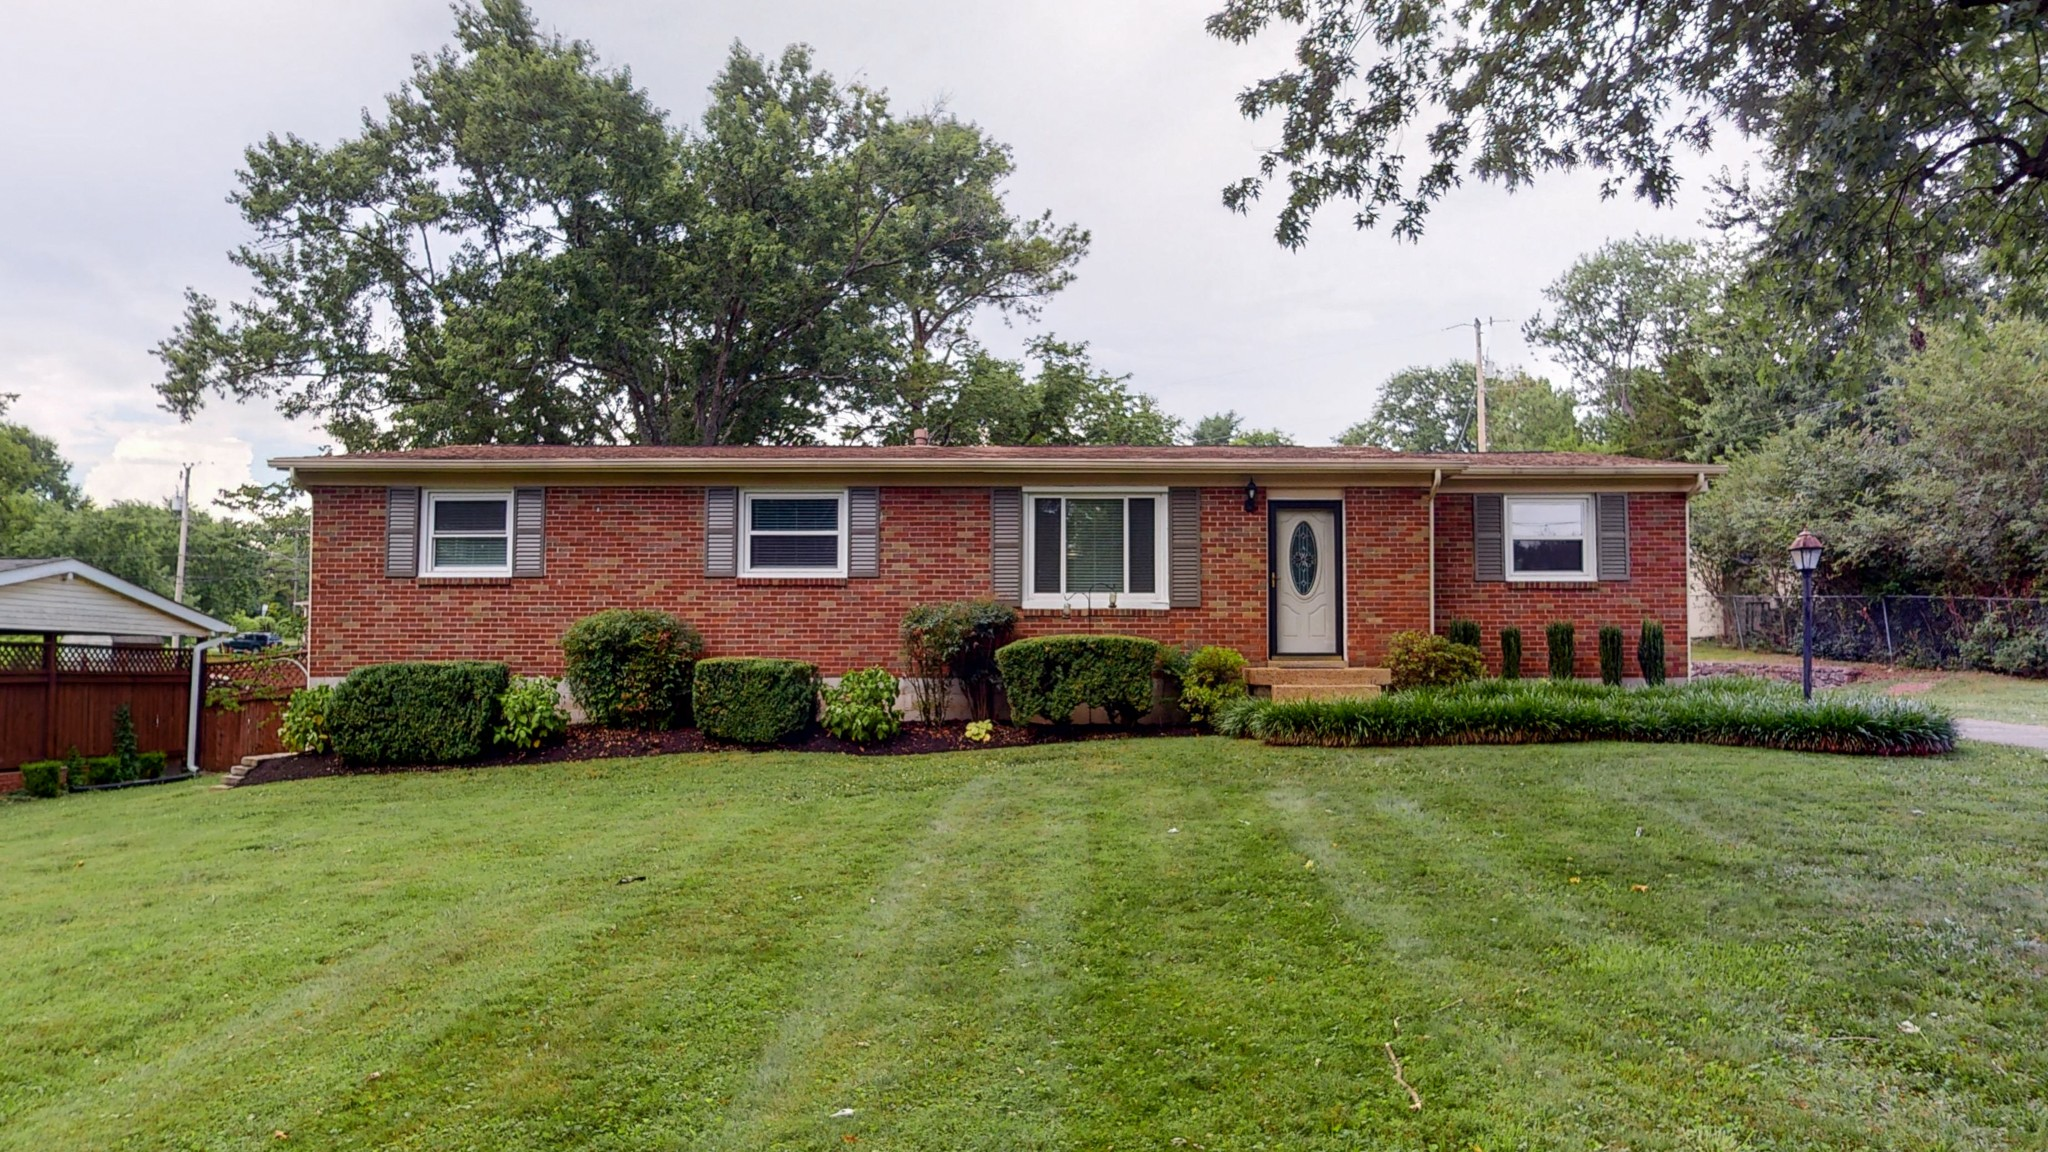 Lovingly maintained for over 30 years. Stunning updated huge kitchen, vaulted ceilings with separate den and large living room.  Recent updates include painting throughout and refinished hardwood floors.  Huge level treed front yard, located in the great community of Donelson.